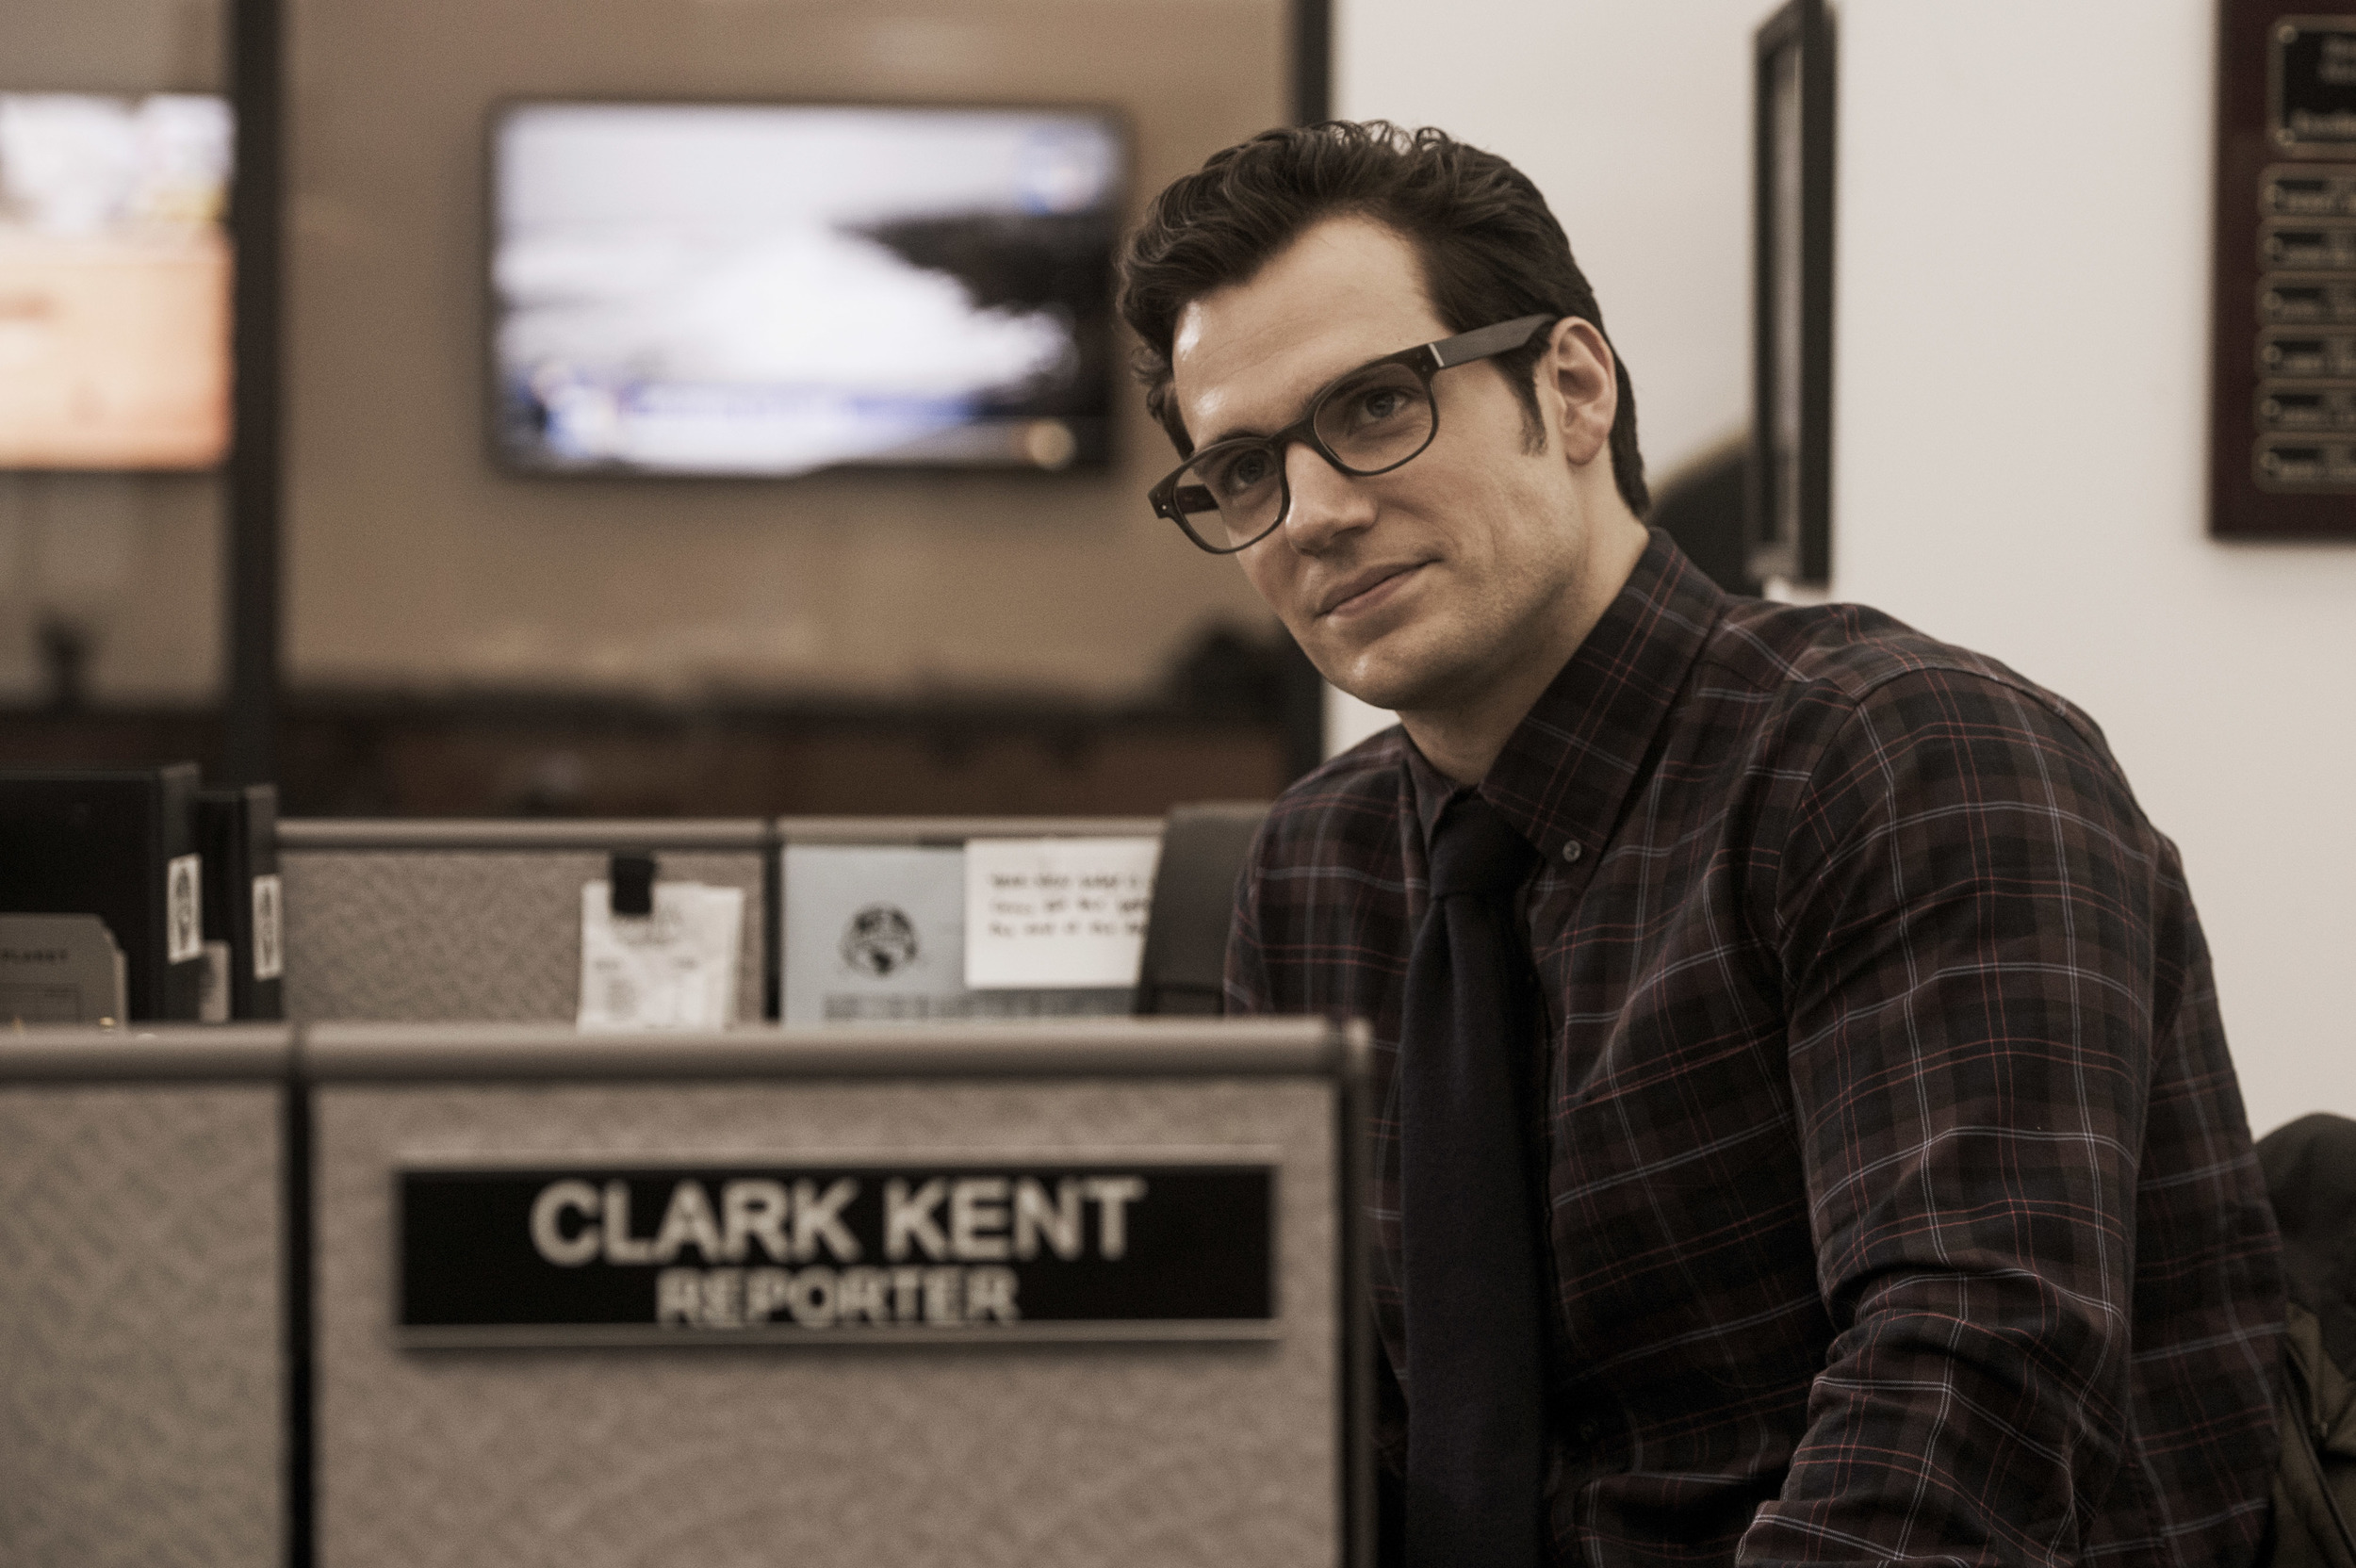 henry-cavill-clark-kent-batman-vs-superman.jpg